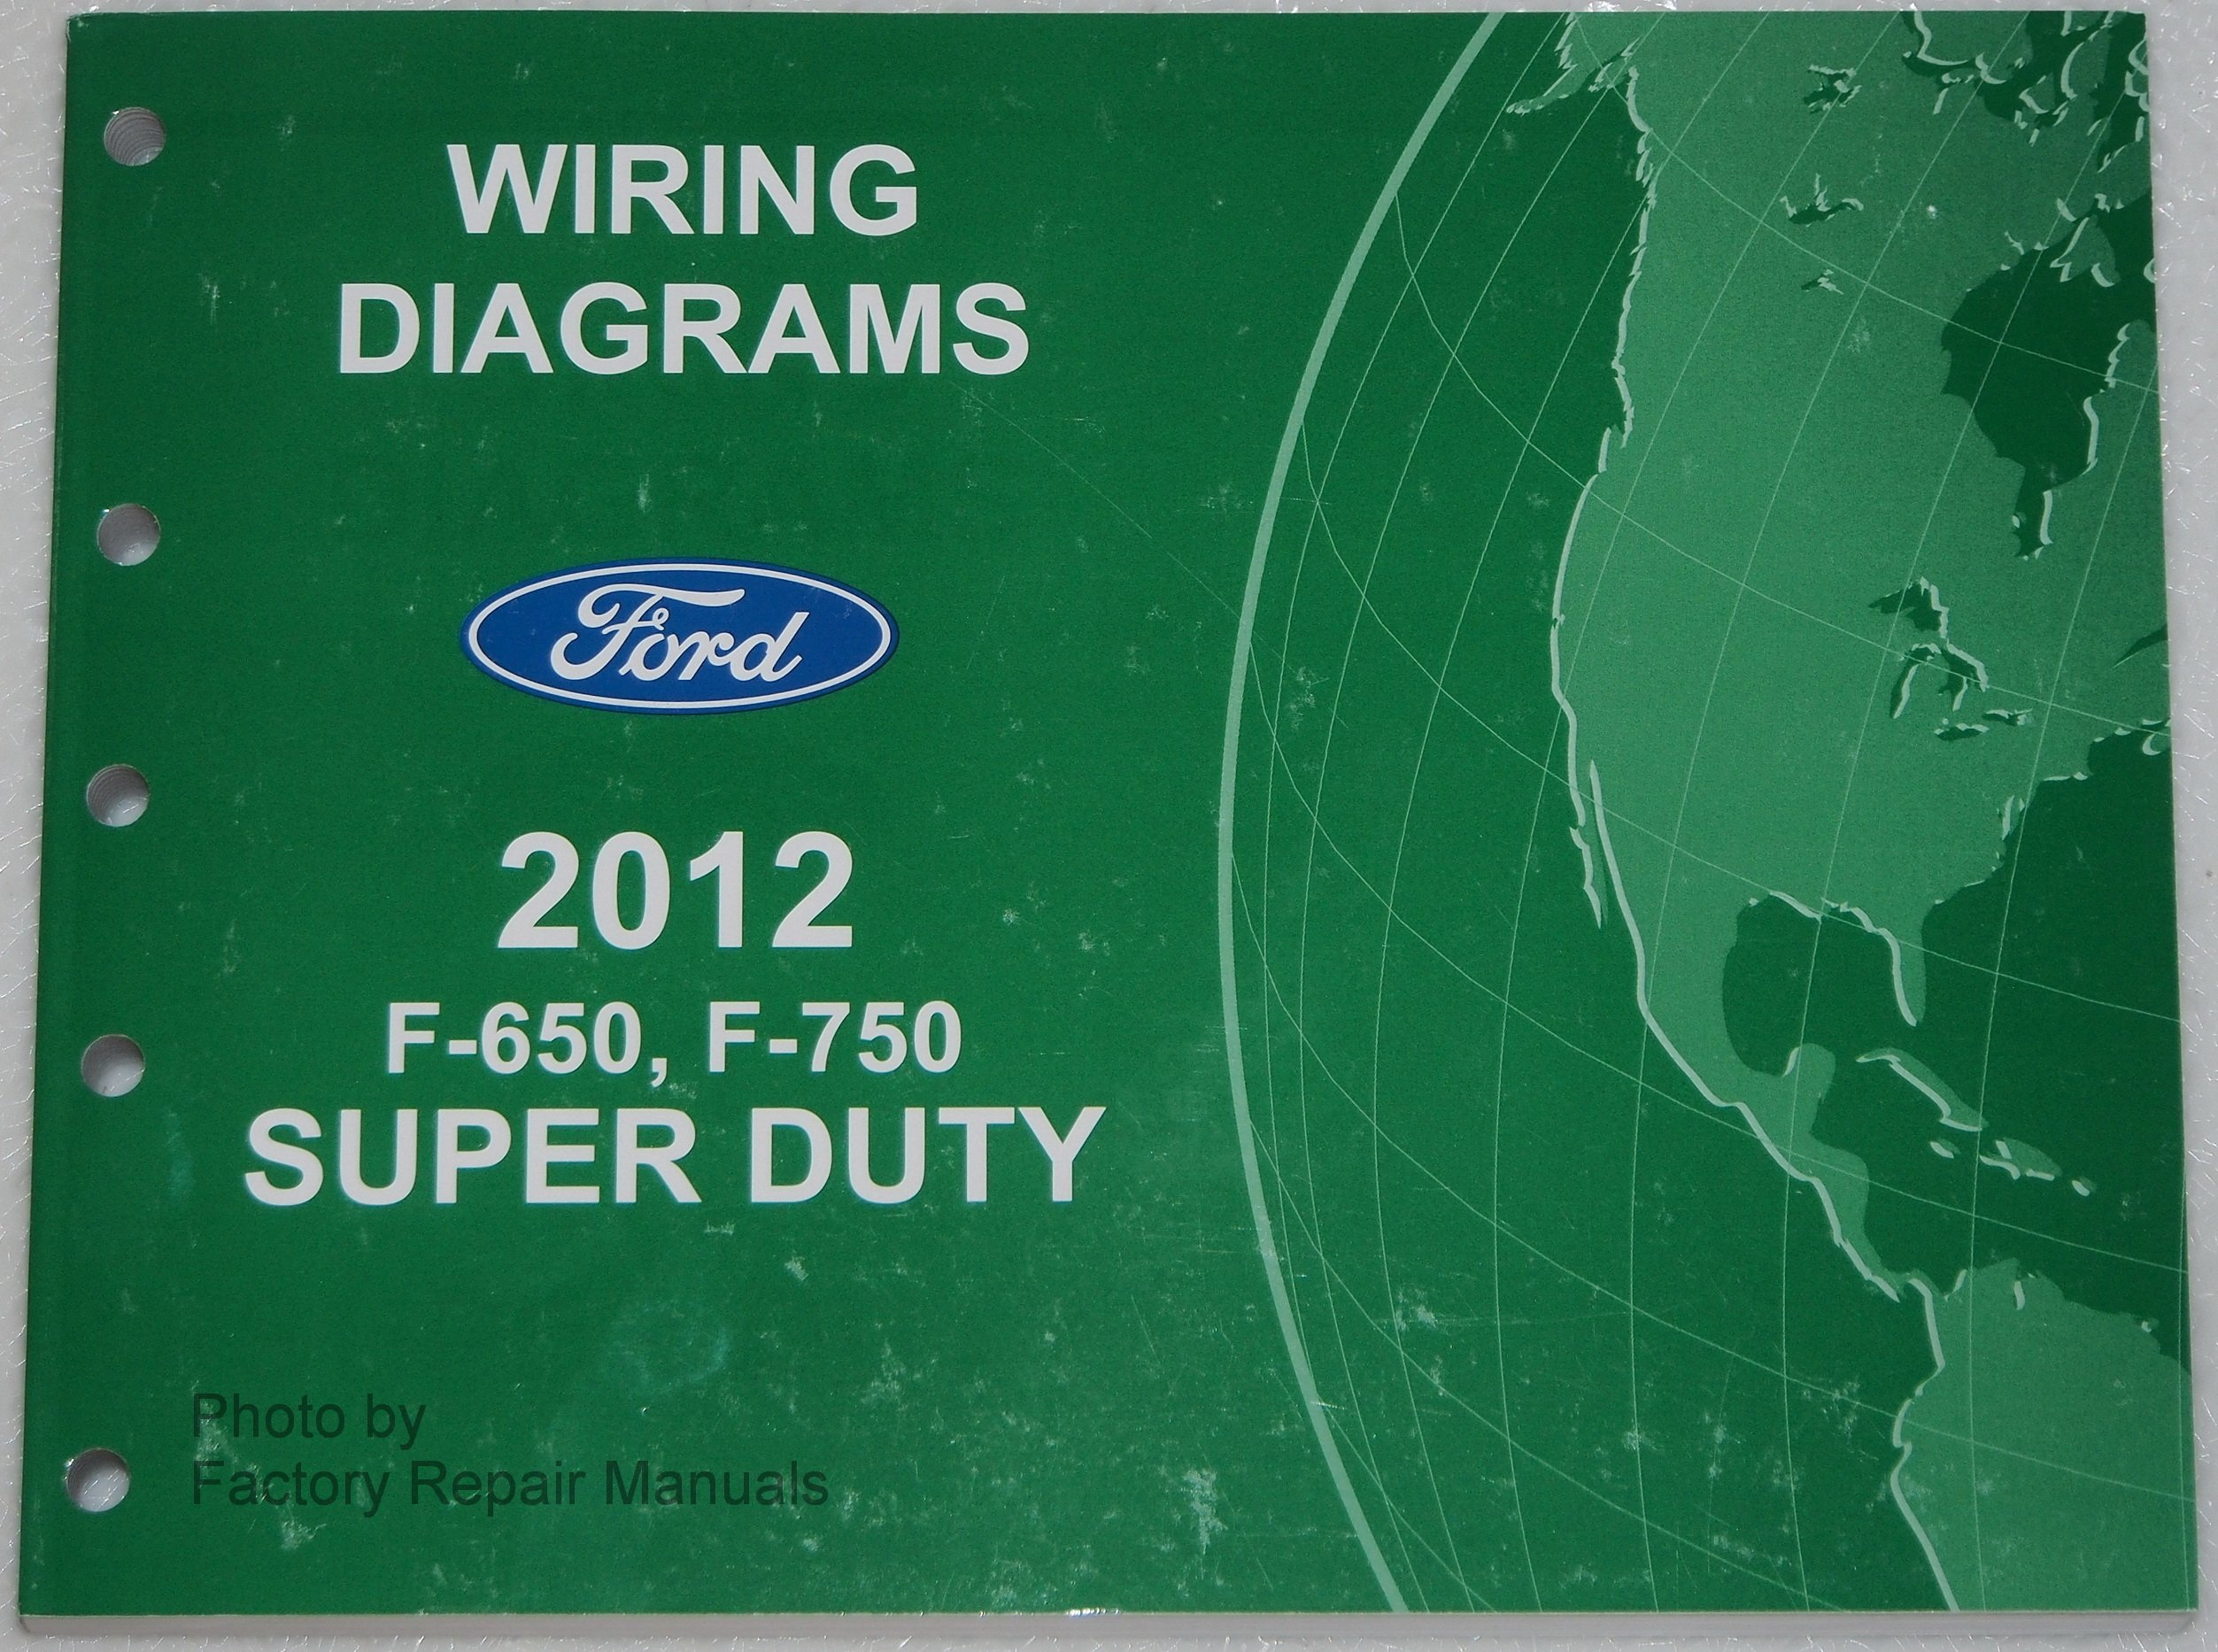 2012 F750 Fuse Diagram Archive Of Automotive Wiring Ford F650 Box Motor Company Amazon Com Books Rh